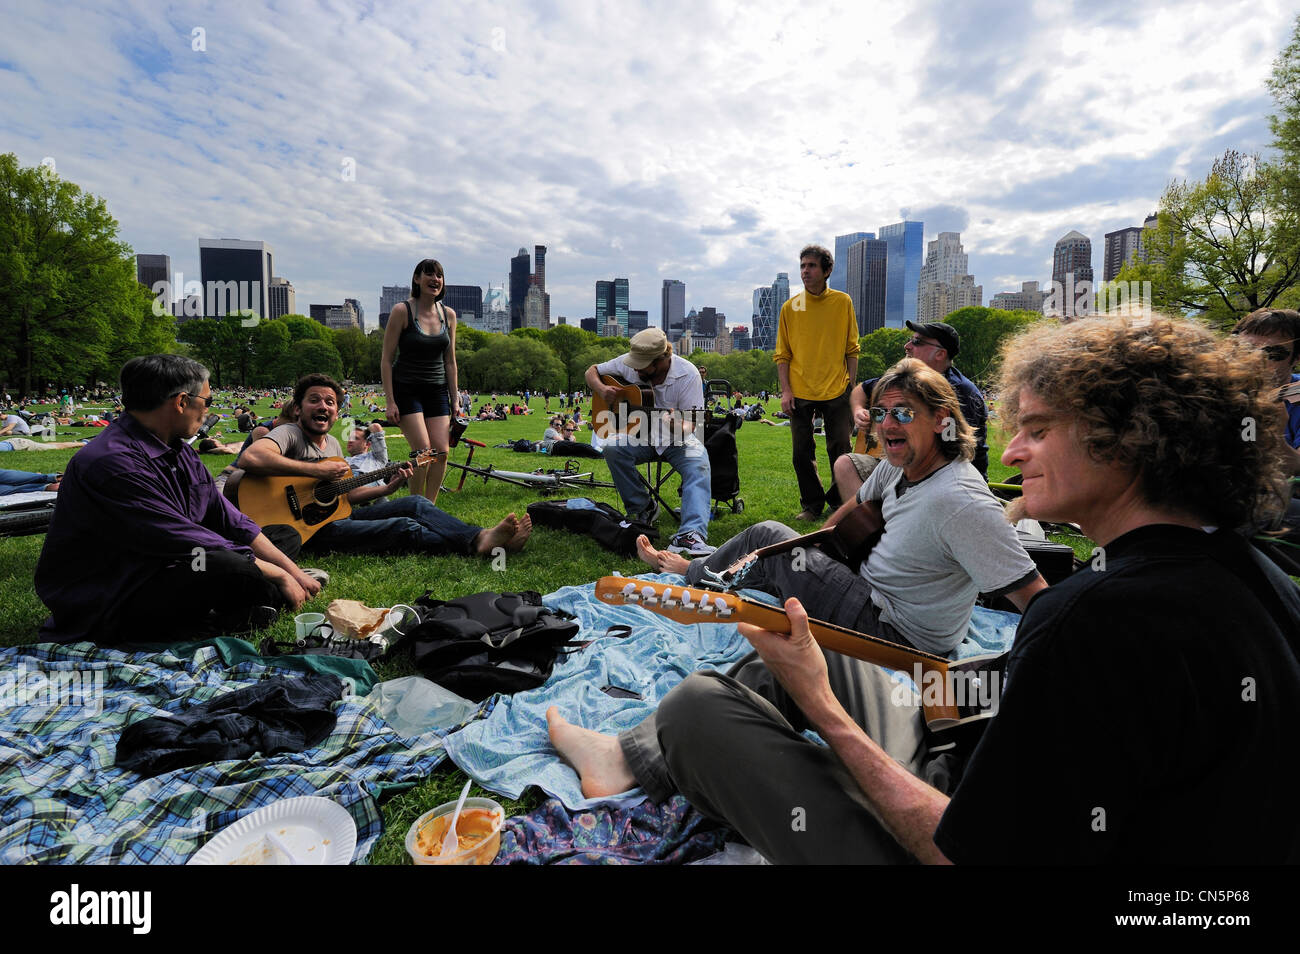 United States, New York City, Manhattan, Central Park, Sundays on the Sheep Meadow, meeting of a group of musicians - Stock Image